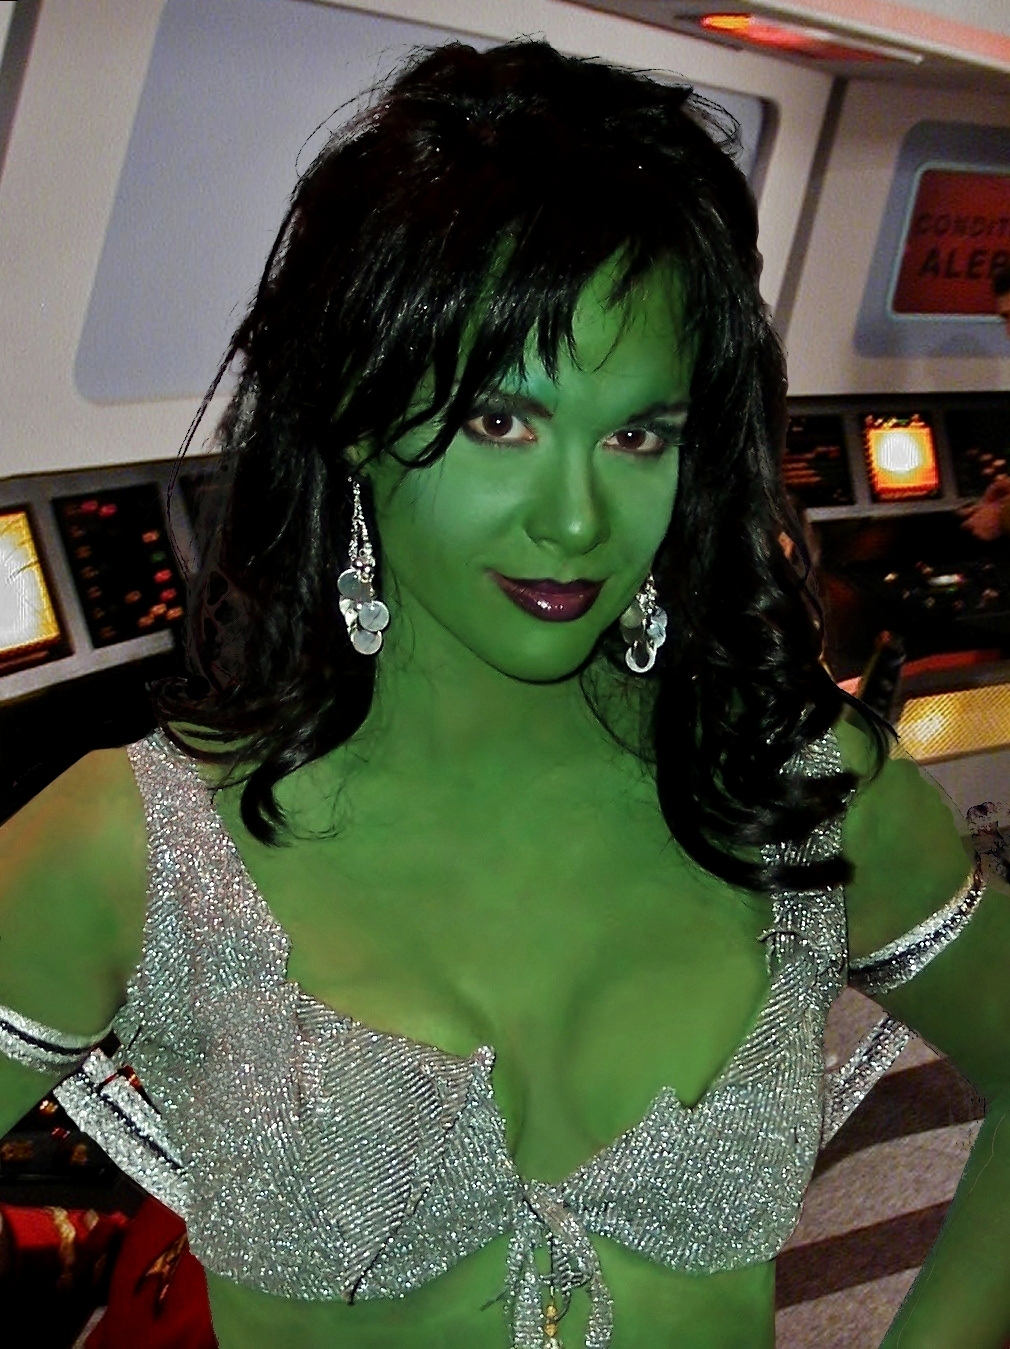 Chase Masterson as Xela, Star Trek: Of Gods and Men, Makeup by Tyla Smith and Tim Vittetoe